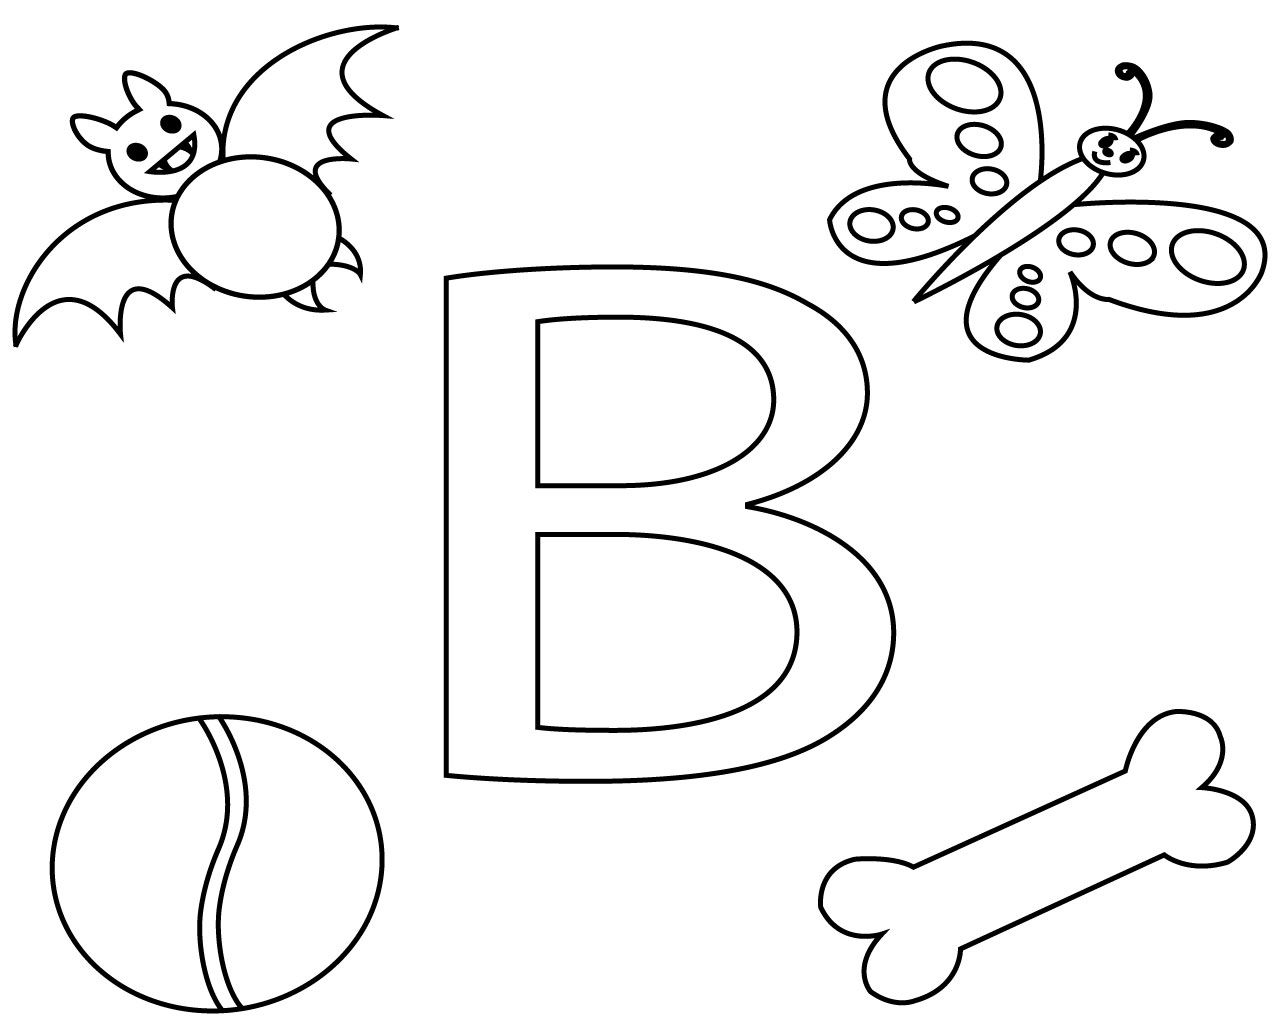 Letter B Coloring Pages Letter B Coloring Pages Coloring Pages For Kids Alphabet Coloring Pages